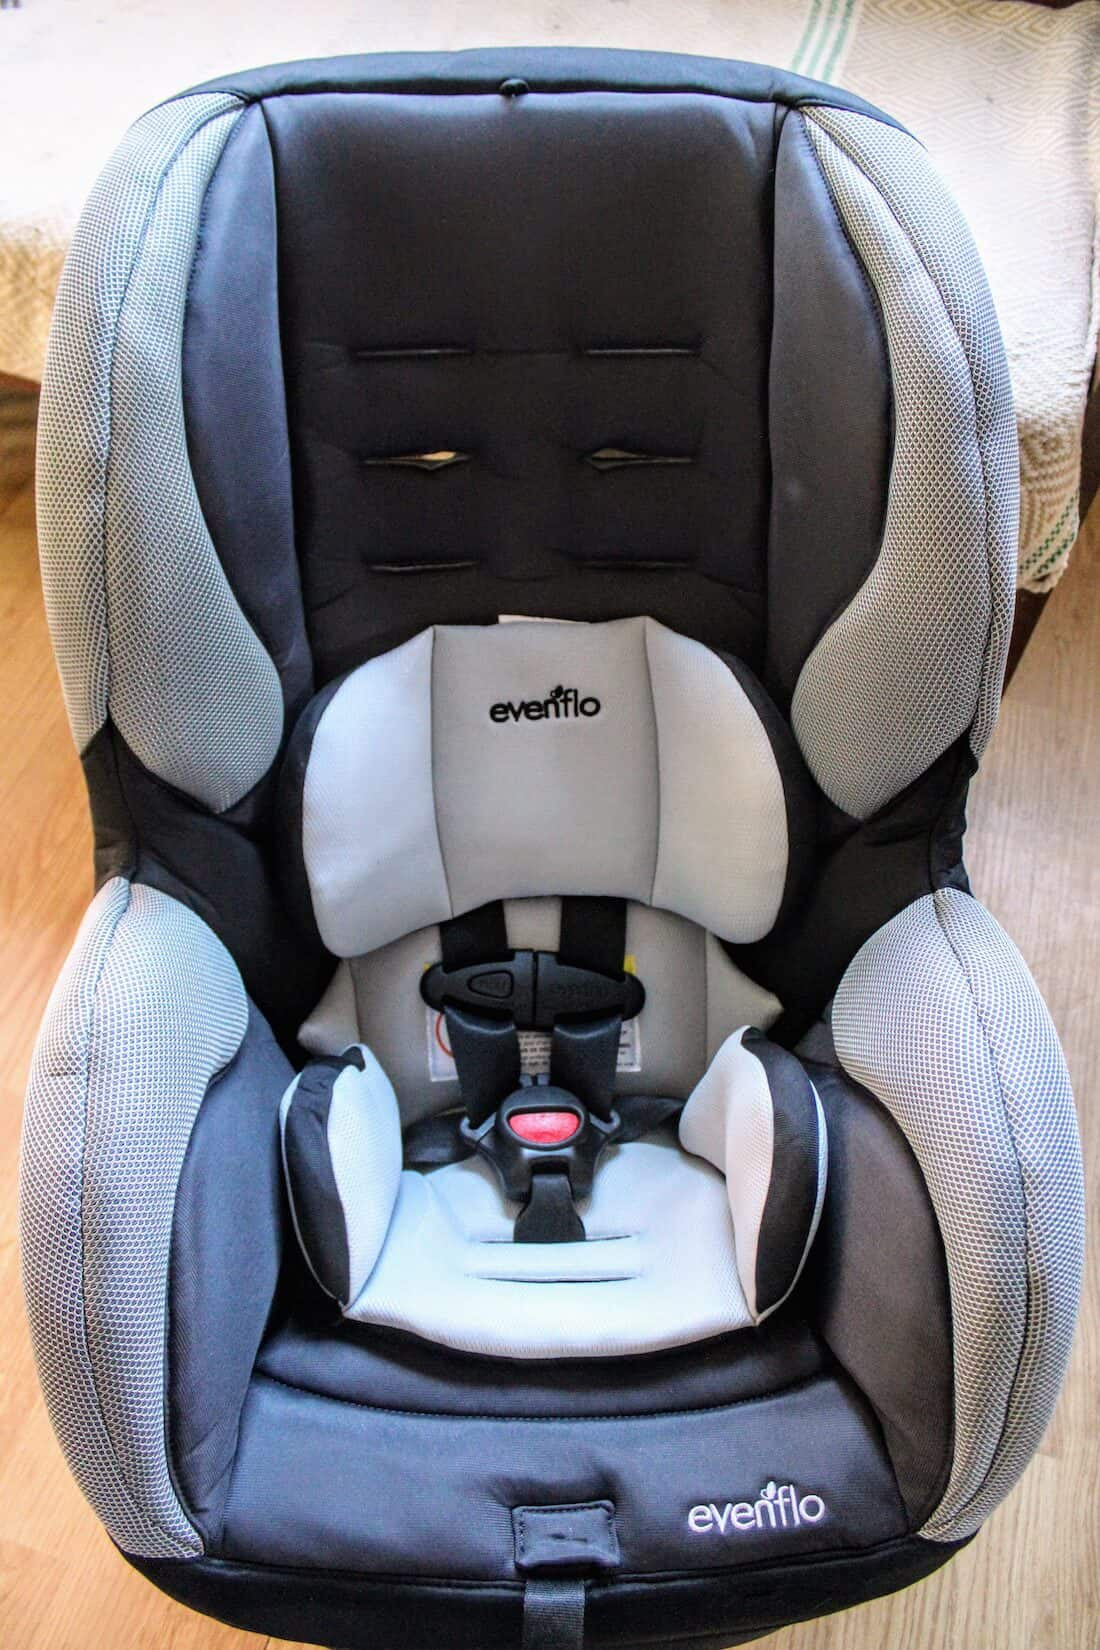 Second Car Safety On A Budget Evenflo Car Seat Review SureRide DLX